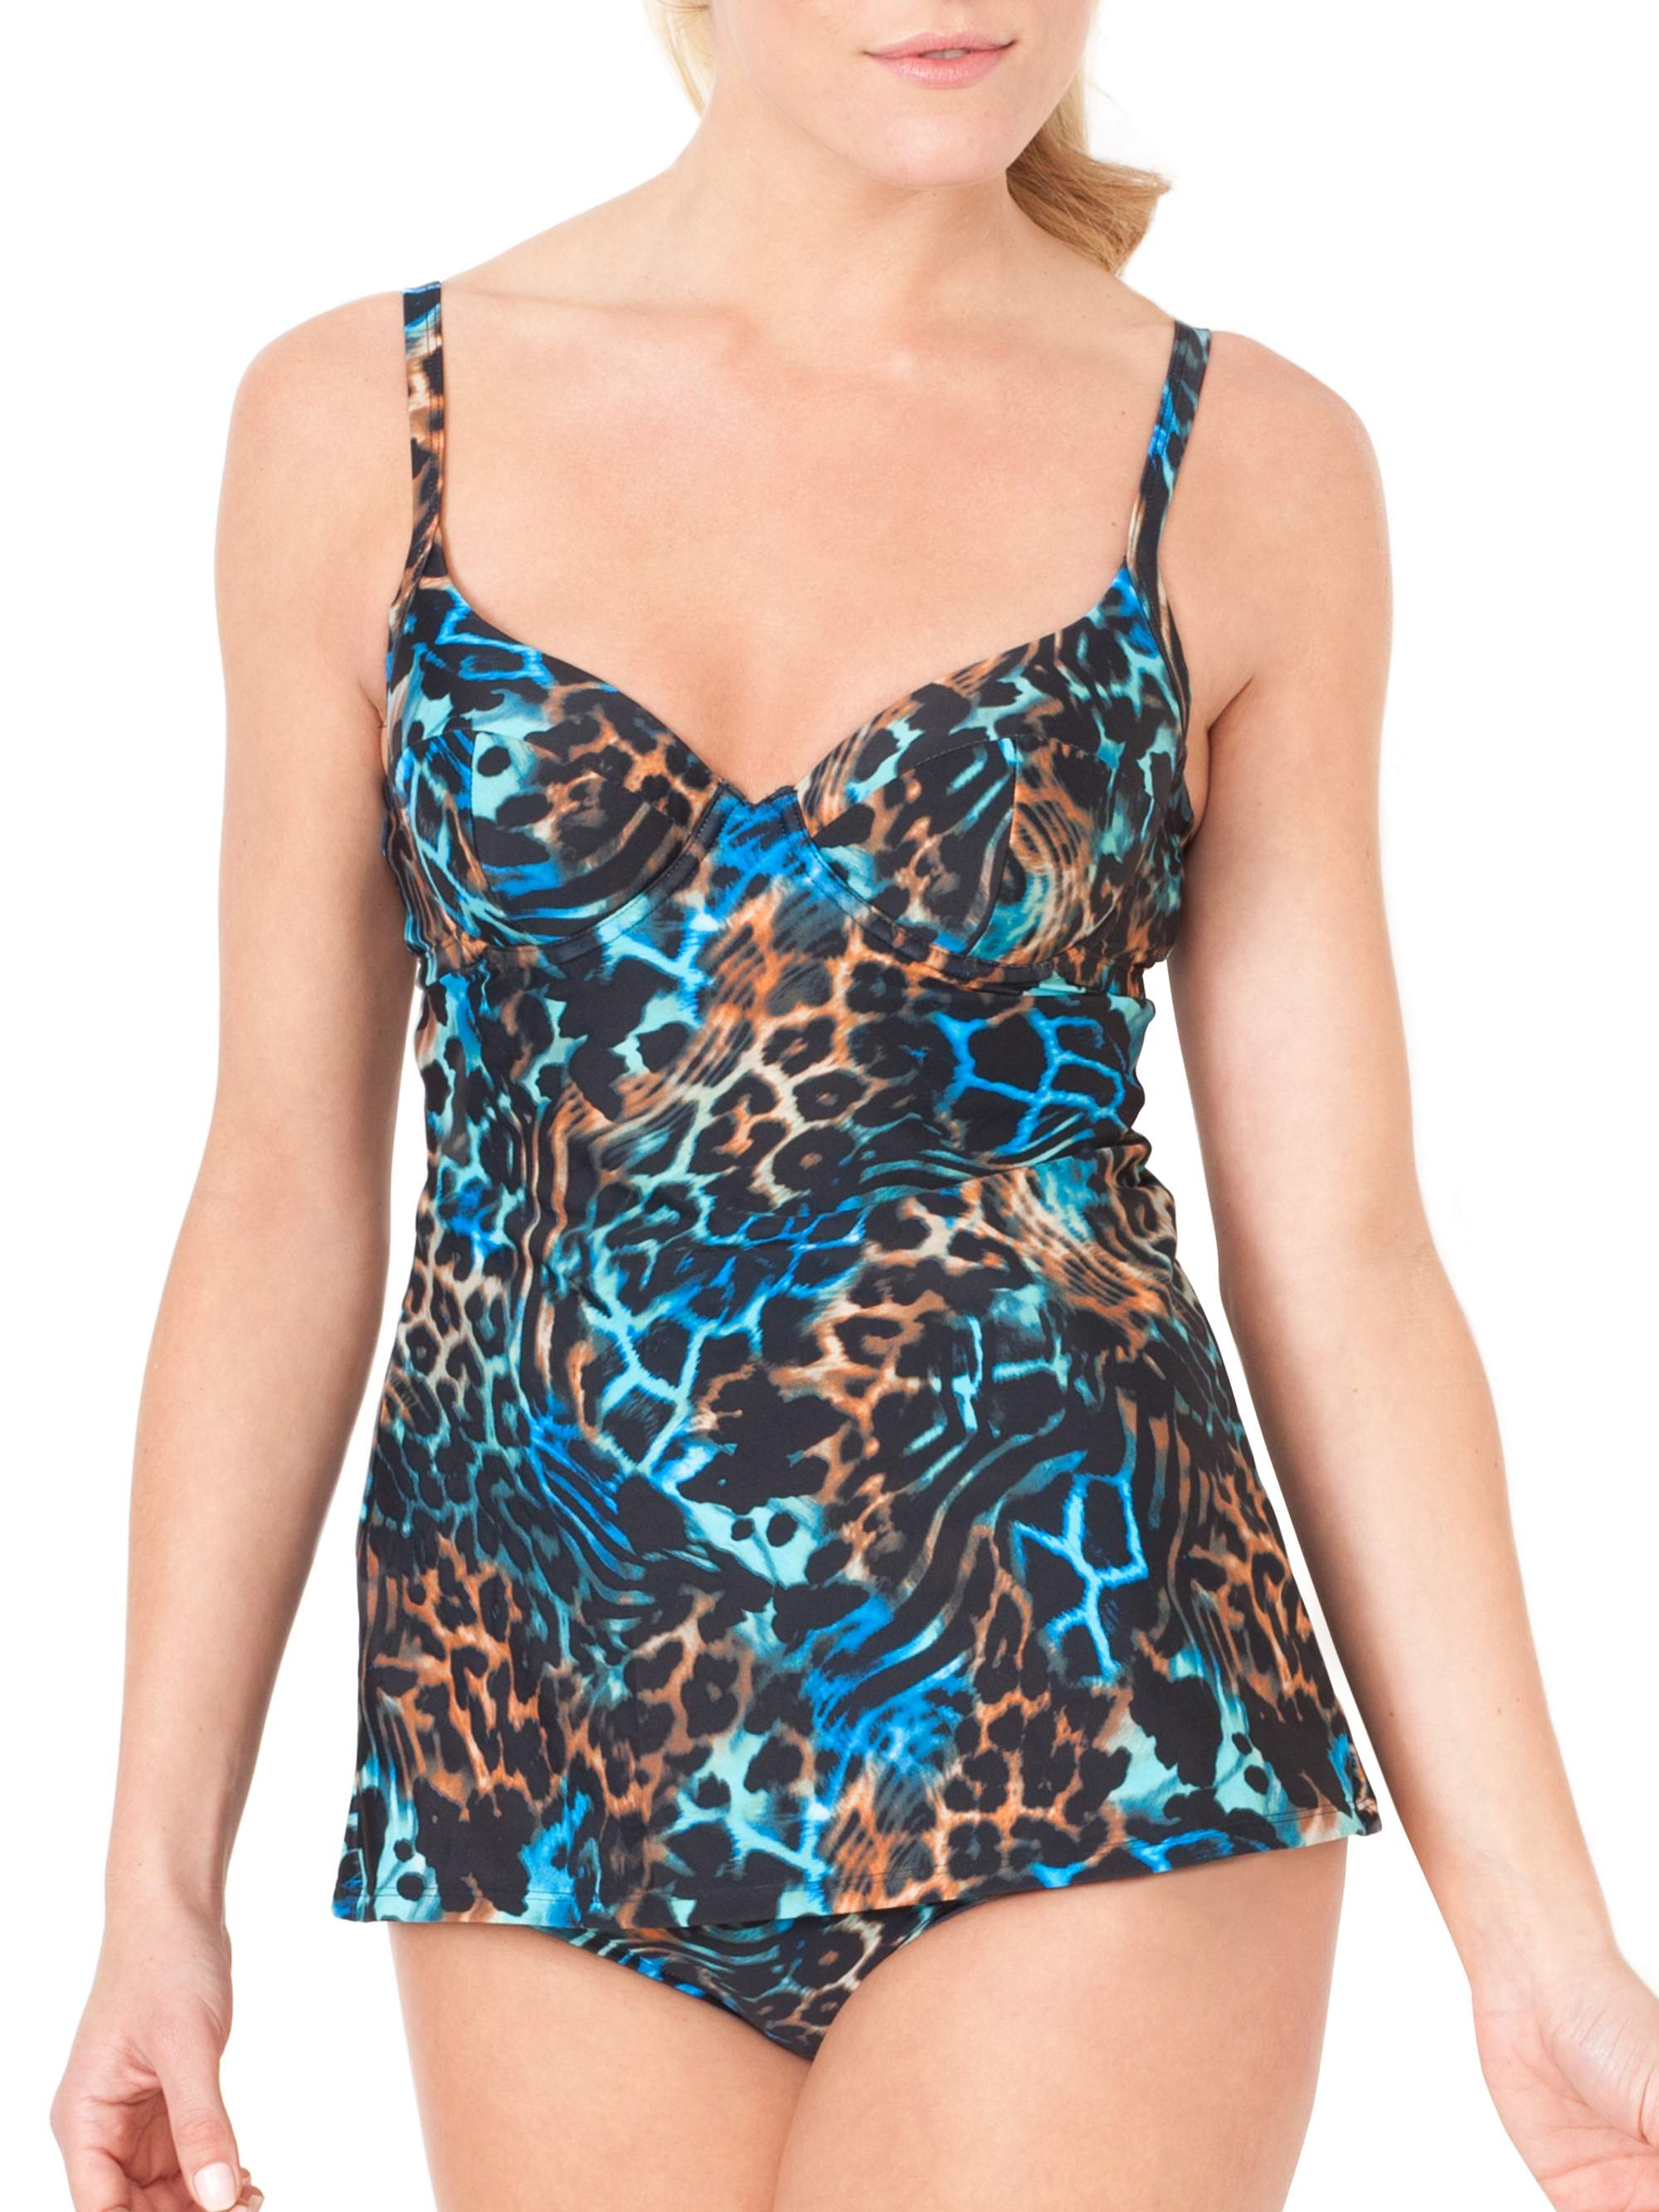 Women's Light Lined Tankini